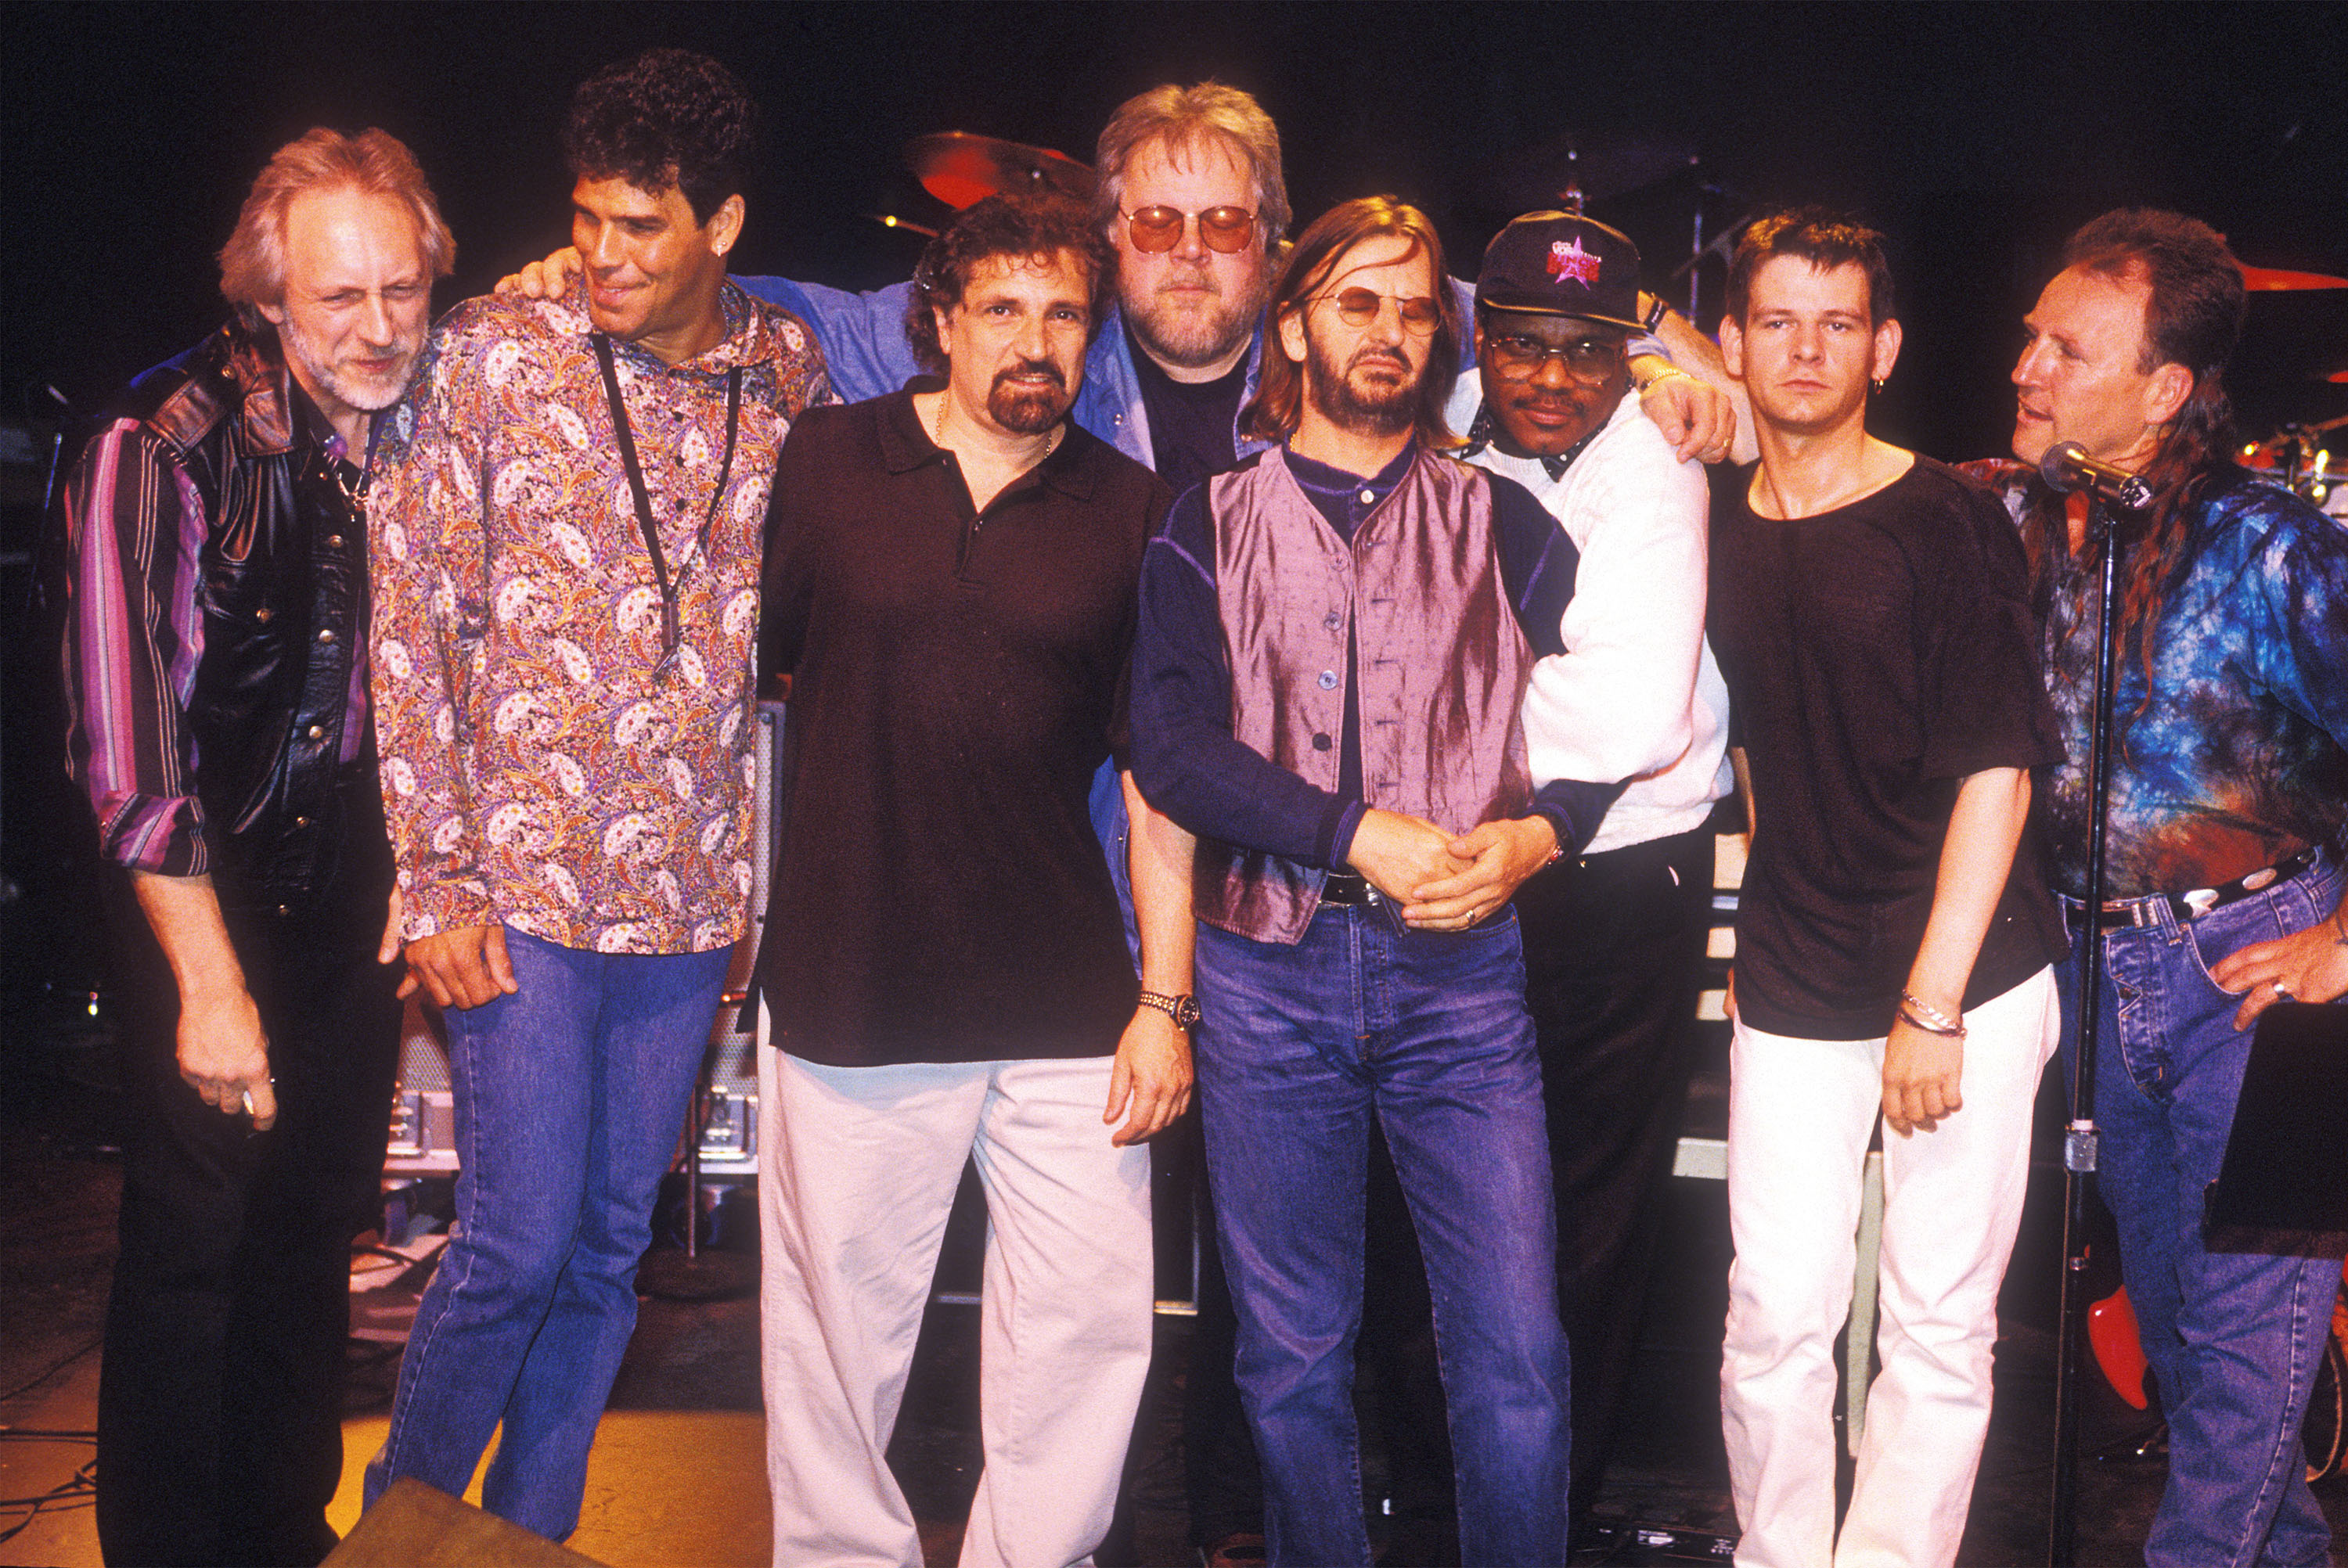 VANCOUVER, CANADA:  John Entwistle (L) poses with the Ringo Starr band in the summer of 1995 in Vancouver, Candada.  Entwistle died June 27, 2002.  (Photo by Jeff Vinnick/Getty Images)